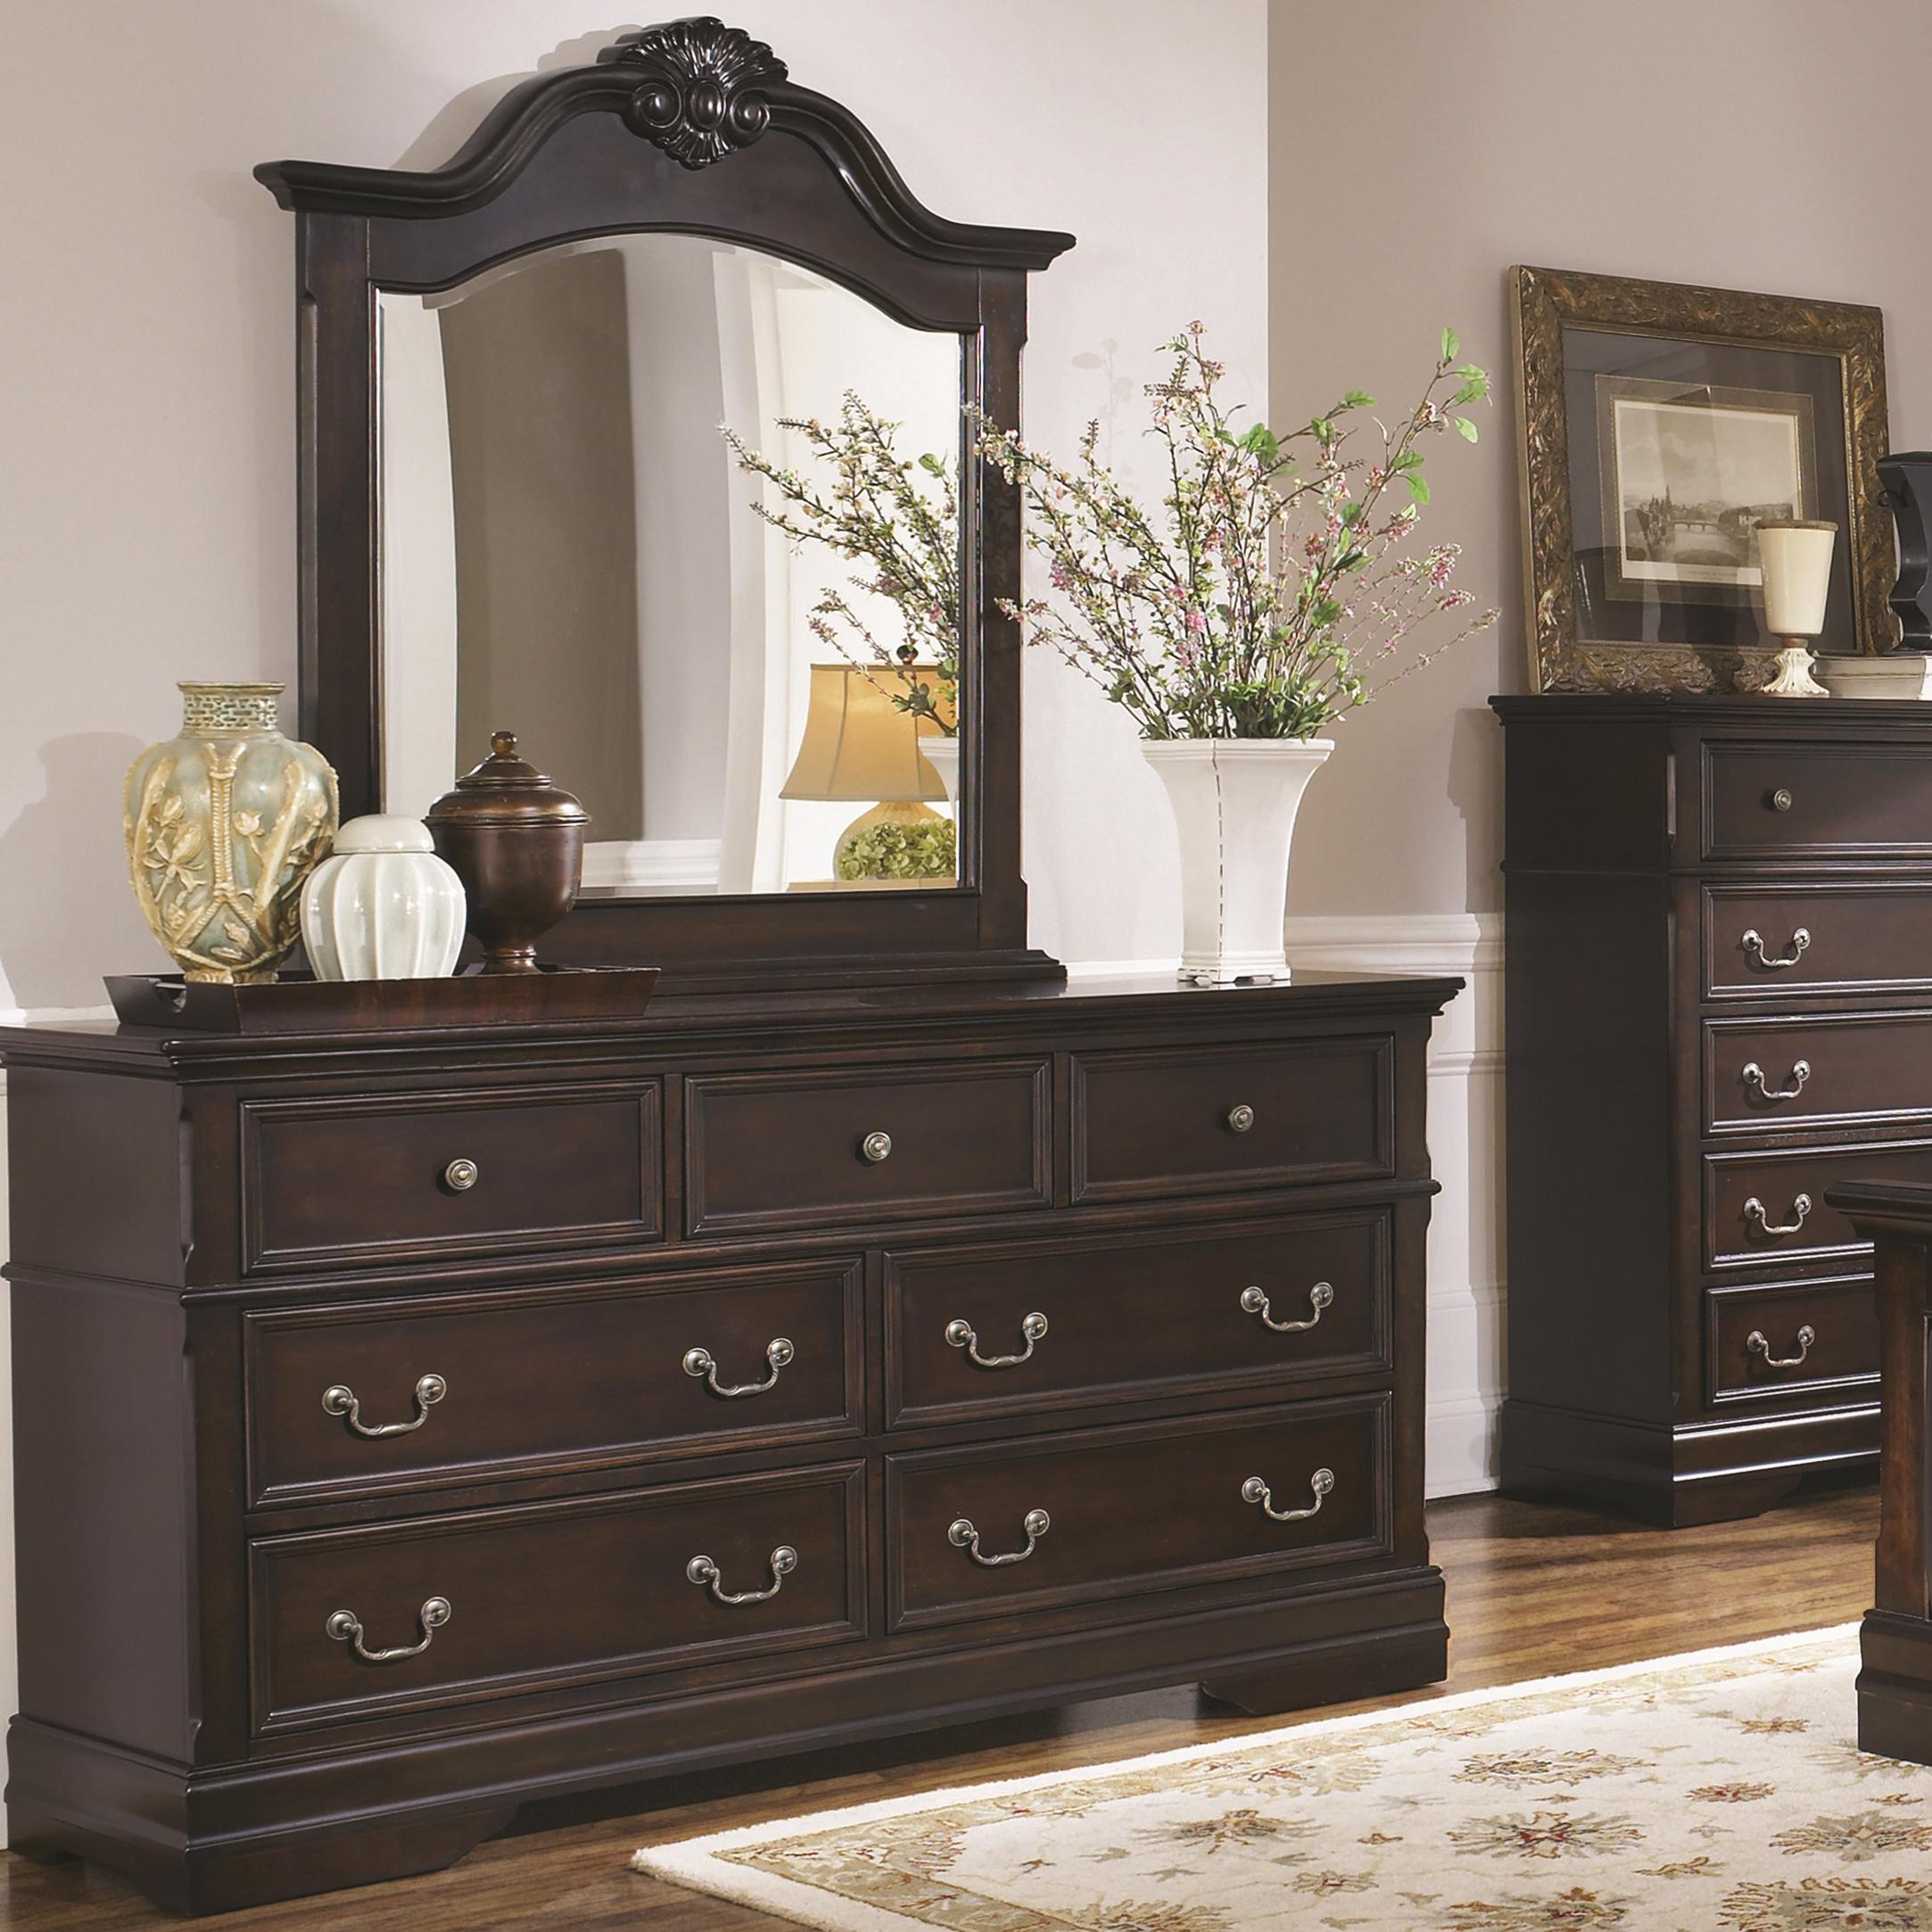 Cambridge Dresser and Mirror Set by Coaster at Rife's Home Furniture